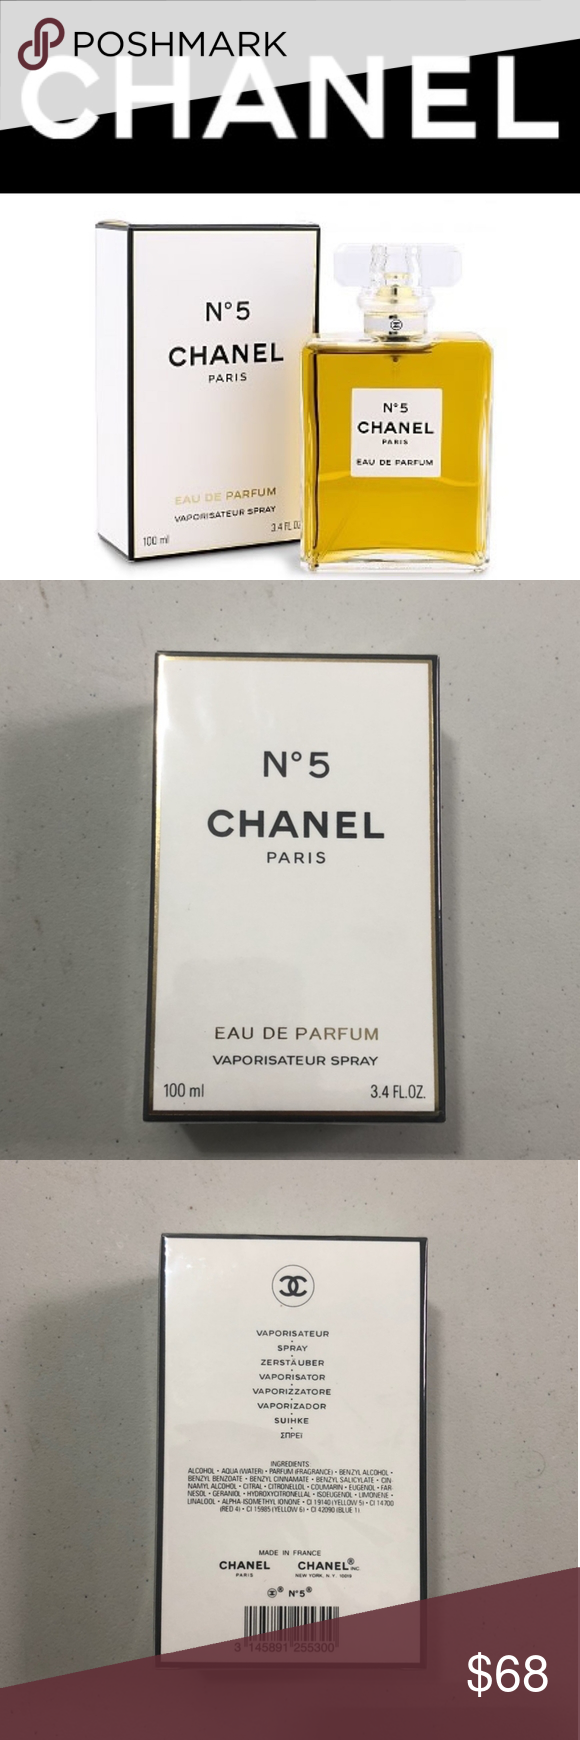 Chanel no5 1x no5 3.4oz  Brand new, sealed  100% authentic  Great gift  1-3 day shipping Sephora Makeup #myposhpicks